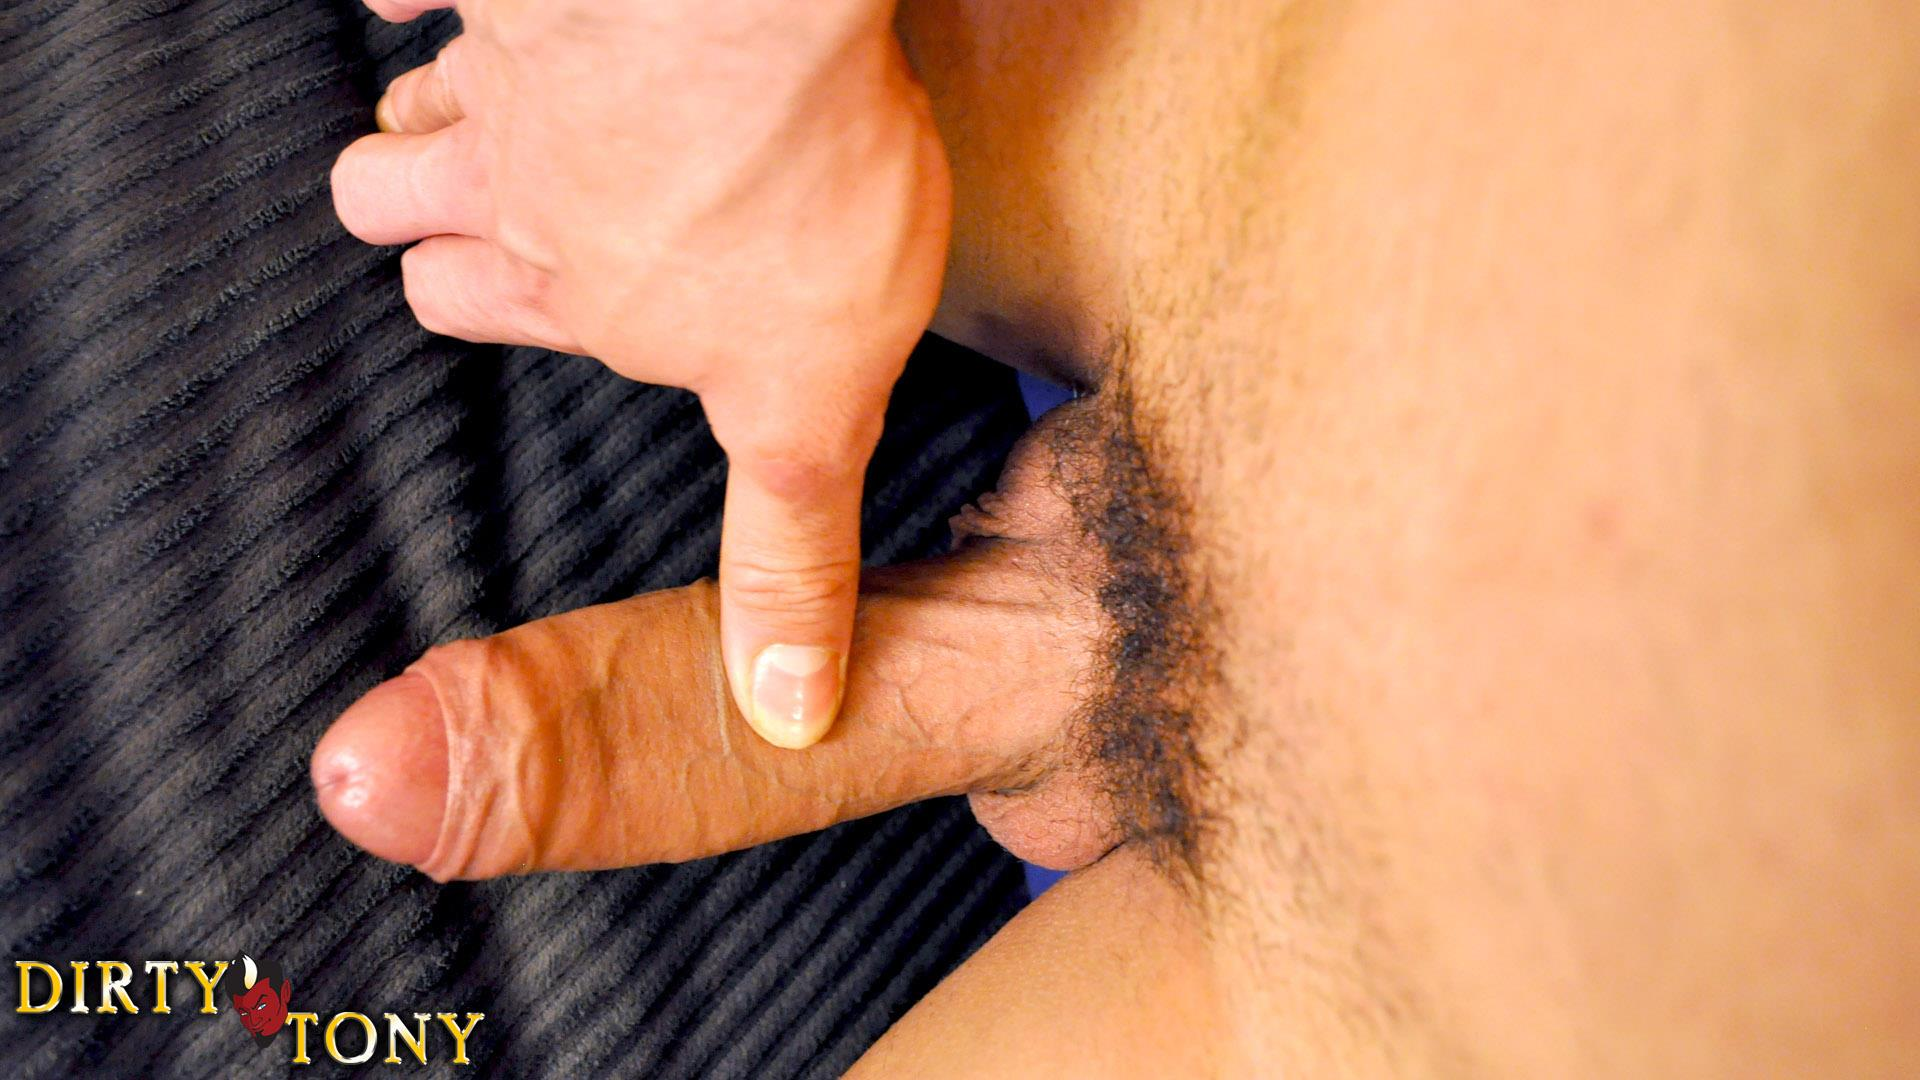 Dirty Tony LIAM SANTIAGO Straight Muscle Latino Jerking Off Big Uncut Cock Amateur Gay Porn 08 Straight Hairy Muscle Latino Auditions For Gay Porn With A Big Uncut Cock